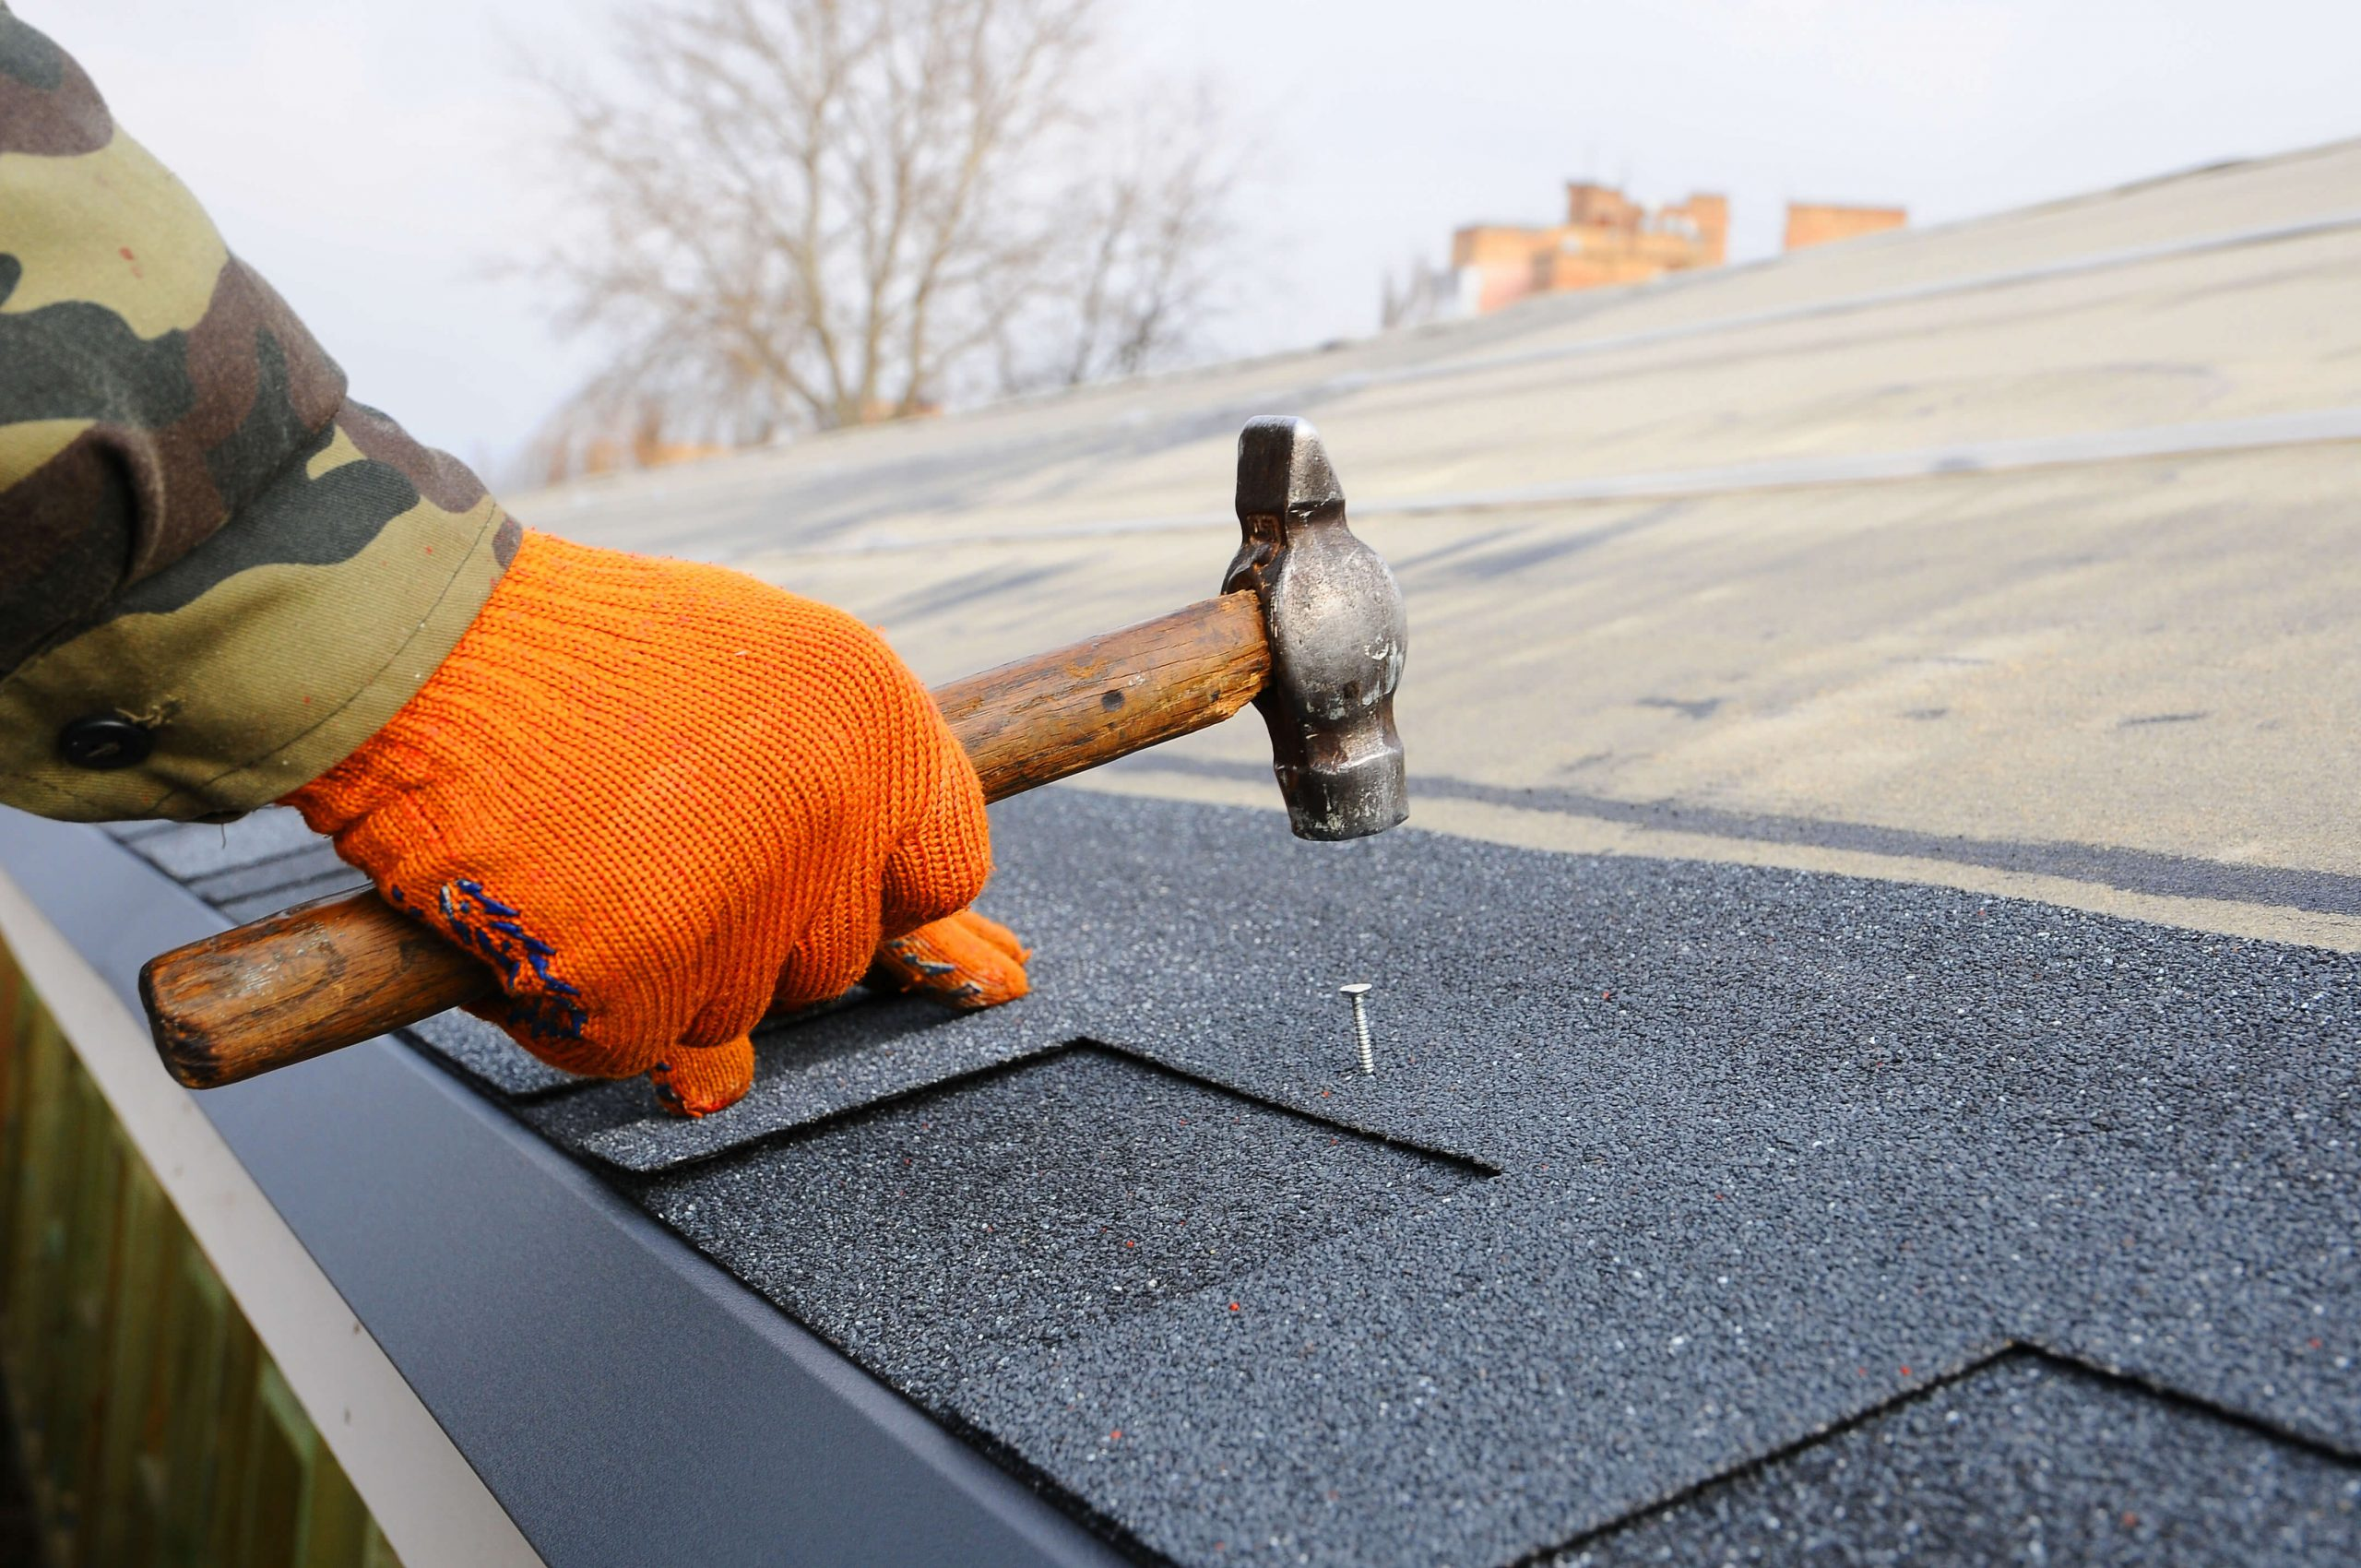 Metal Roofing Lifetime Warranty?